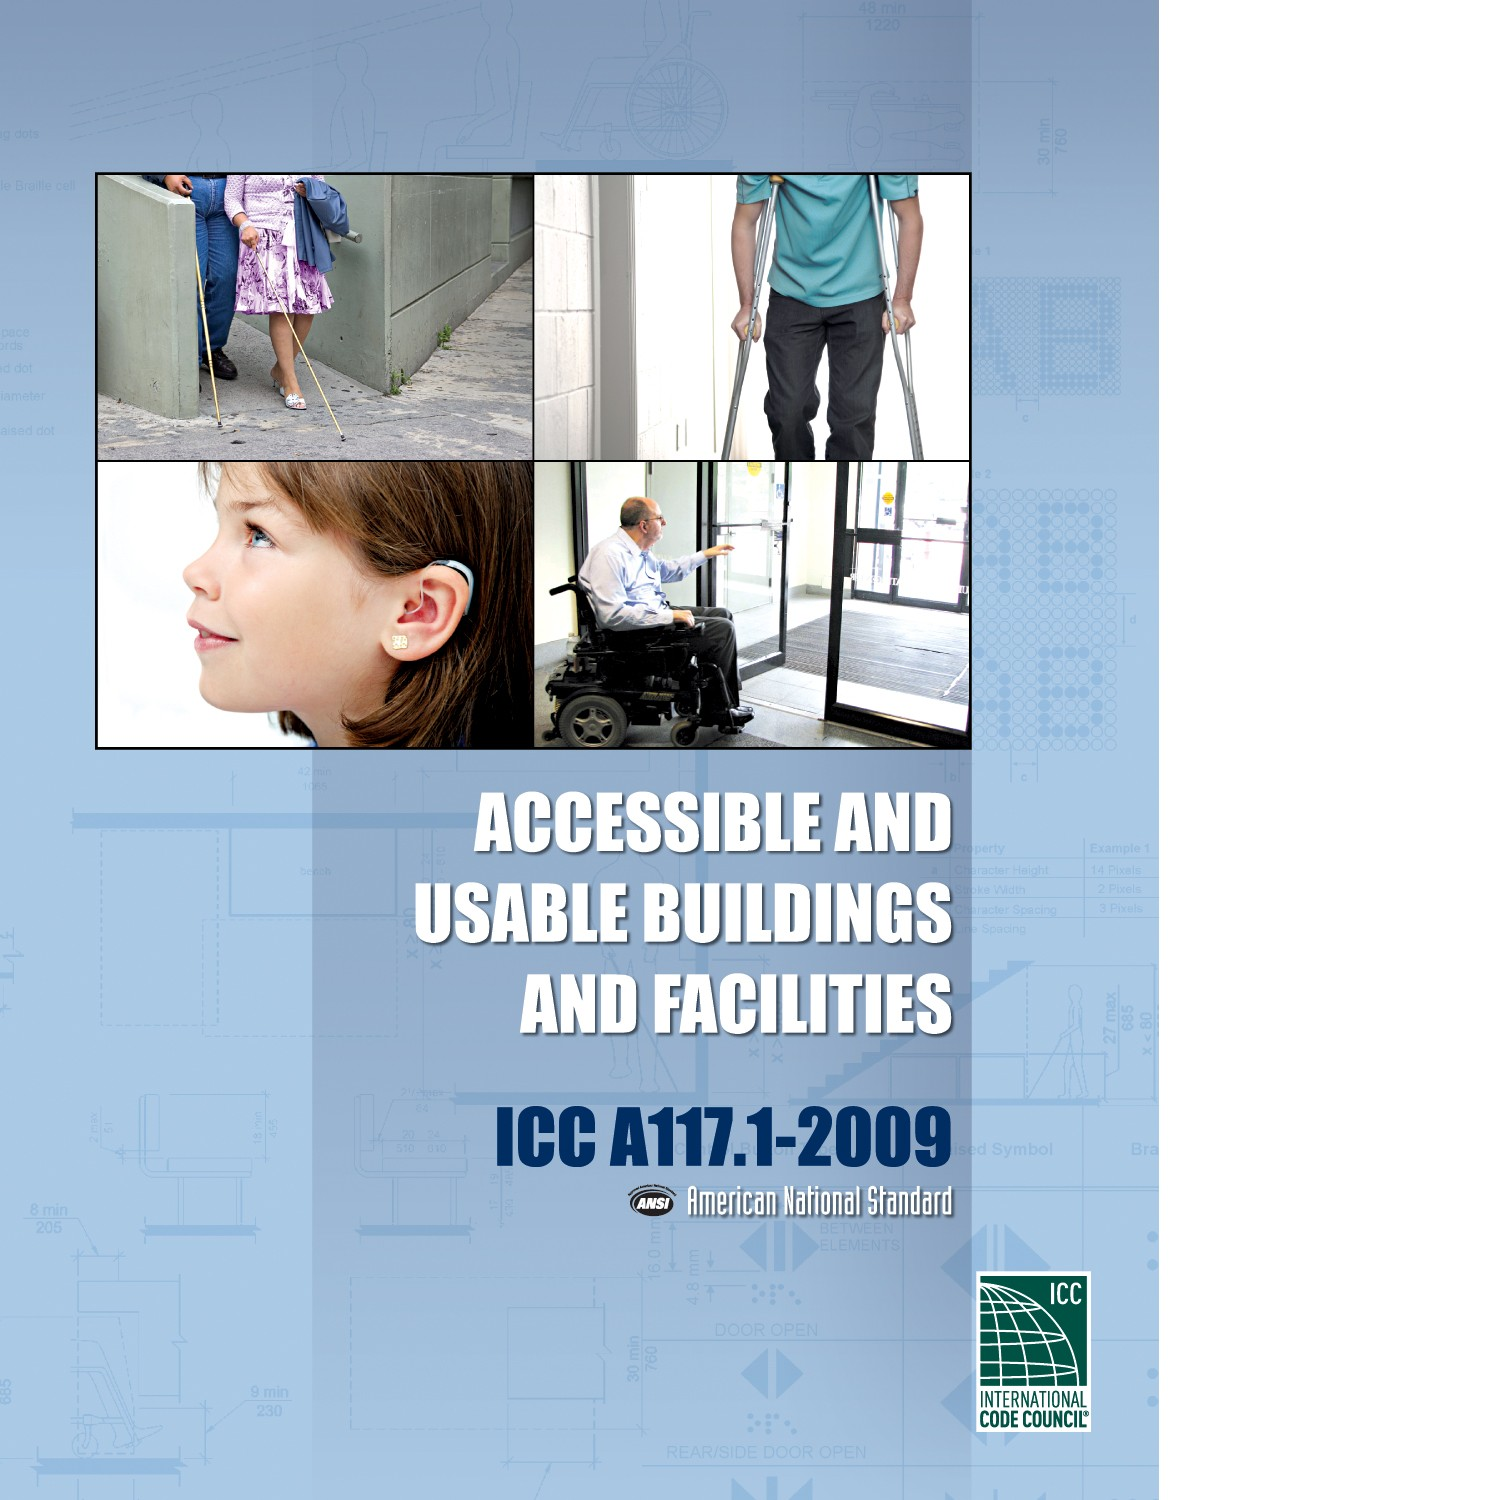 ANSI Accessible and Usable Buildings and Facilities, 2009